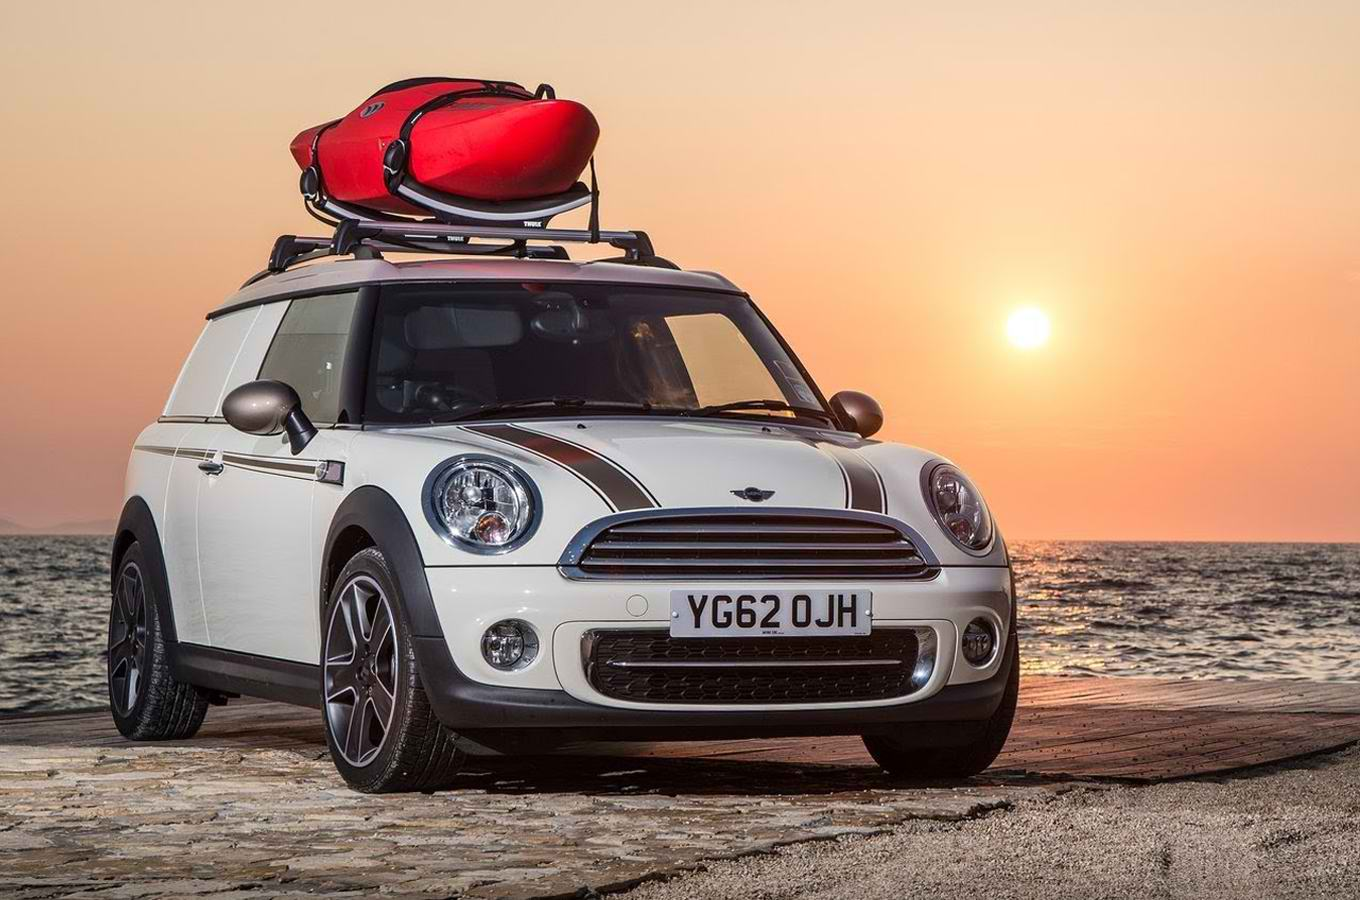 THE NEXT LEVEL CAMPING CARS,cars, best cars 2018, best cars for travelers, best traveling cars, camping cars, luxury camp cars, camp cars by jeep, Jeep Wrangler, SUV' cars